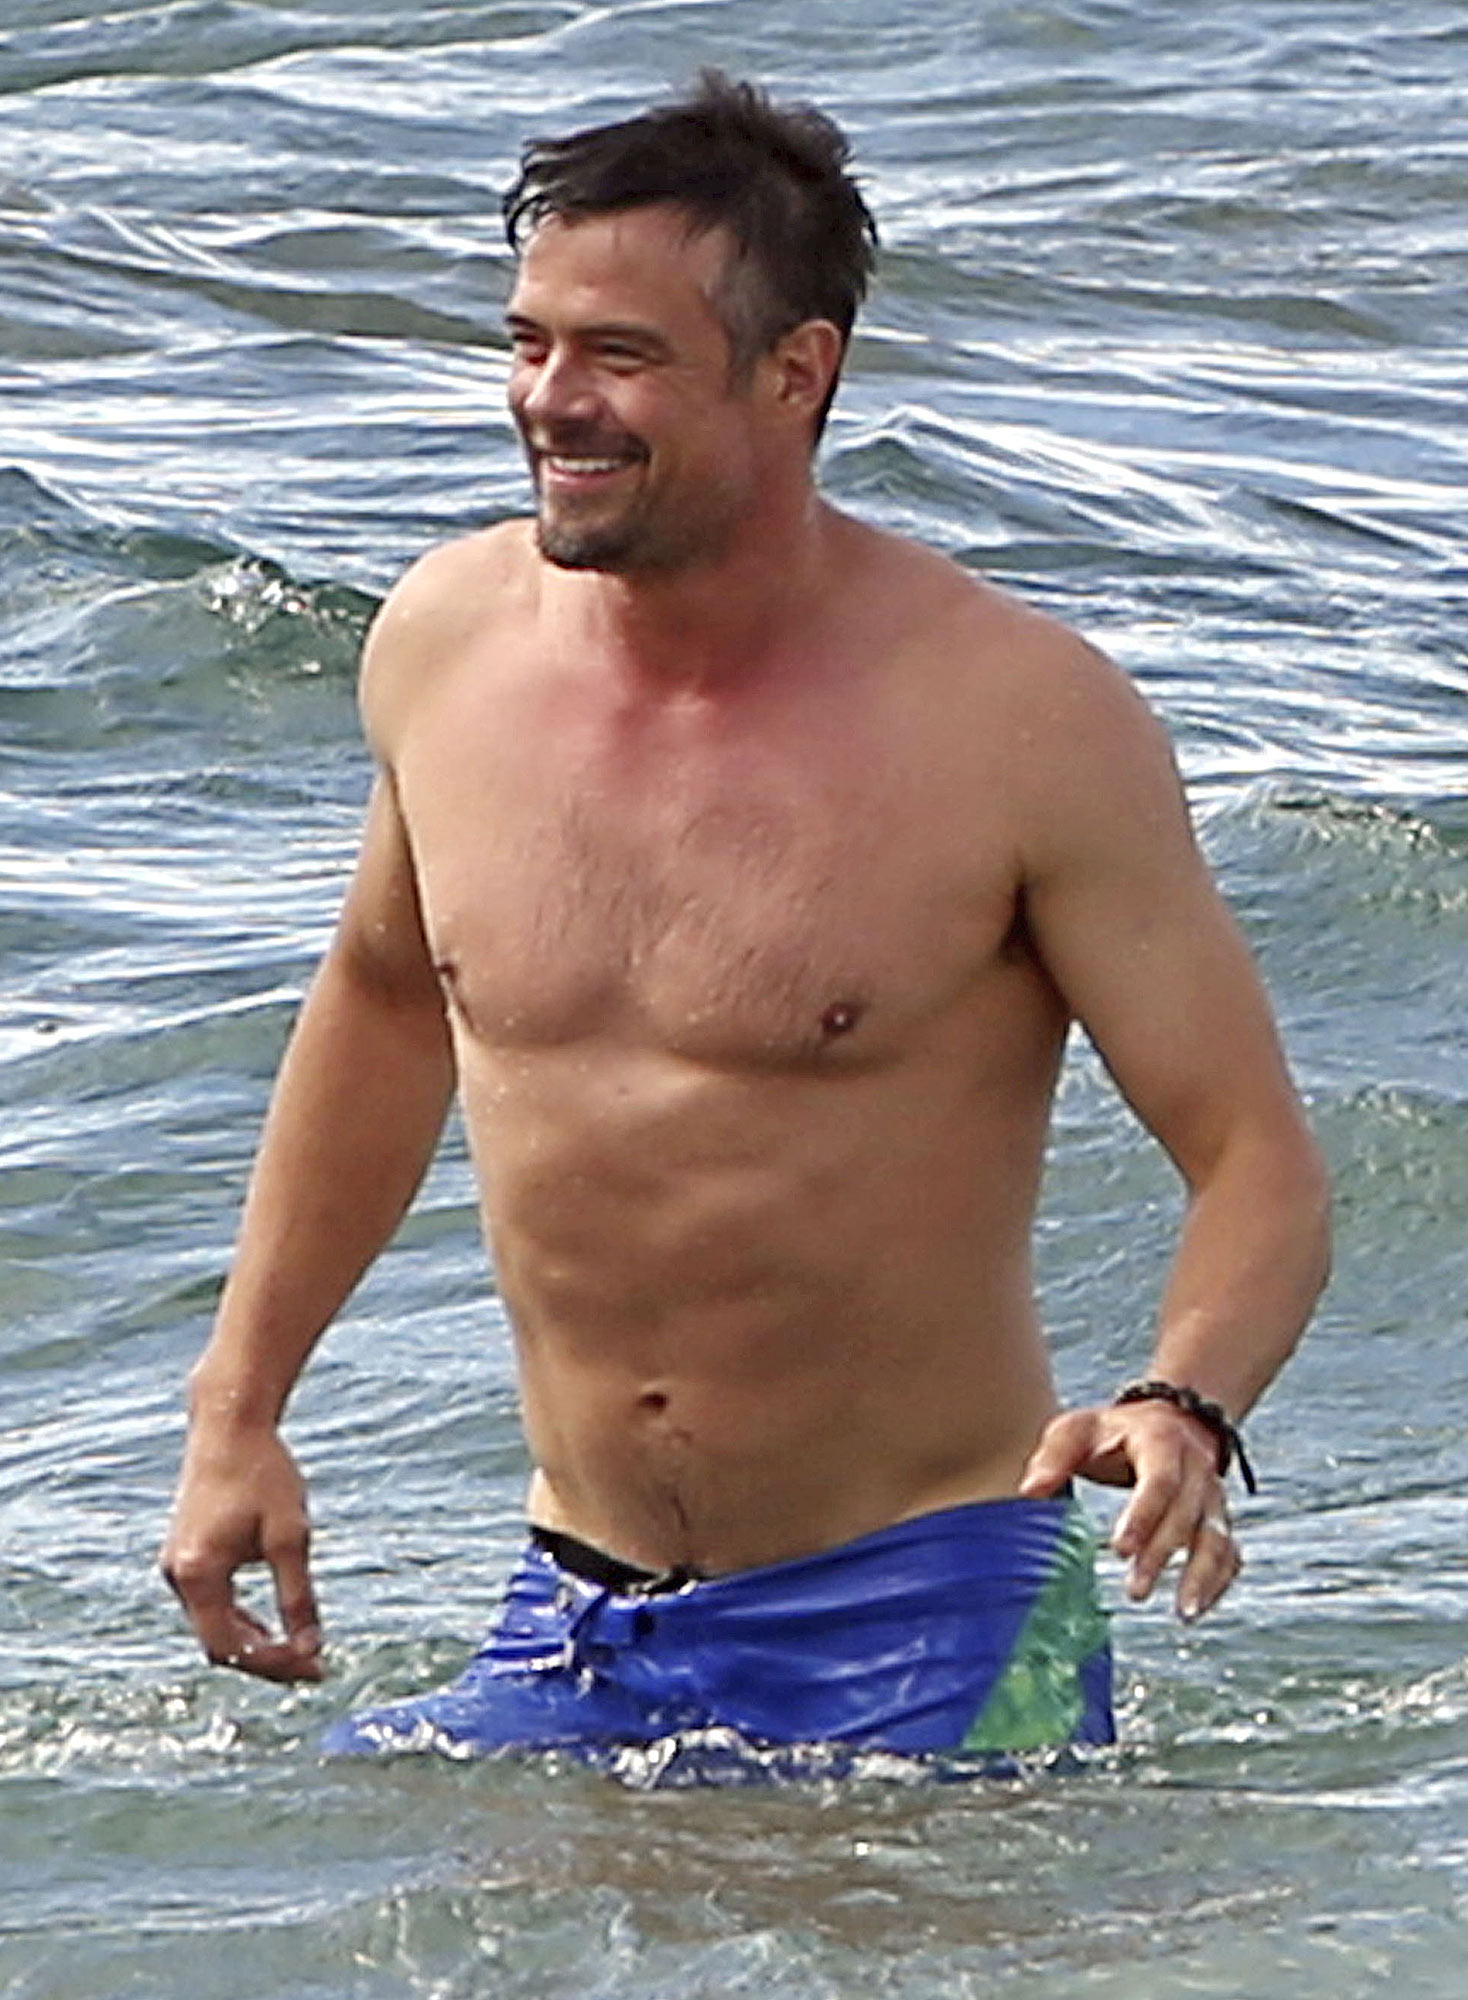 *PREMIUM EXCLUSIVE* Kihei, HI - Fergie and Josh Duhamel enjoy the beach during their Hawaiian holiday vacation. Josh Duhamel is seen stepping out of the water showing off his toned bod before posing with a fan as an excited Fergie looks on in the background. The couple seem to be enjoying their New Year's Eve on the Hawaiian beach. Shot on 01/01/11 **MANDATORY CREDIT MUST READ: FameFlynet/AKM-GSI** AKM-GSI January 03, 2017 To License These Photos, Please Contact : Maria Buda (917) 242-1505 mbuda@akmgsi.com sales@akmgsi.com or Mark Satter (317) 691-9592 msatter@akmgsi.com sales@akmgsi.com www.akmgsi.com